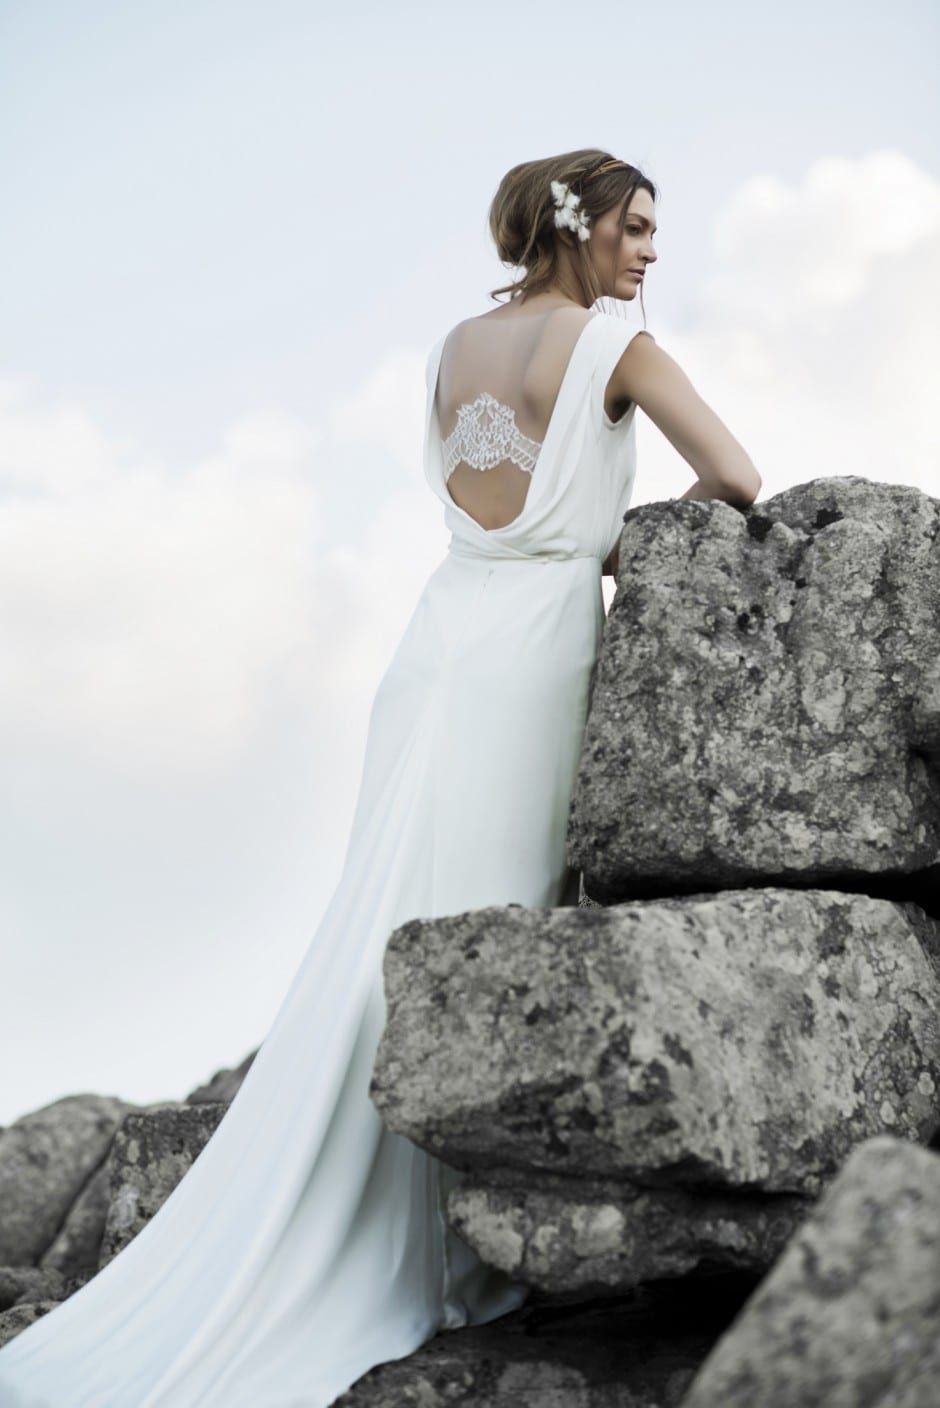 Morgan Davies Bridal - Designer Wedding Dresses - Anna Kara, Vera.